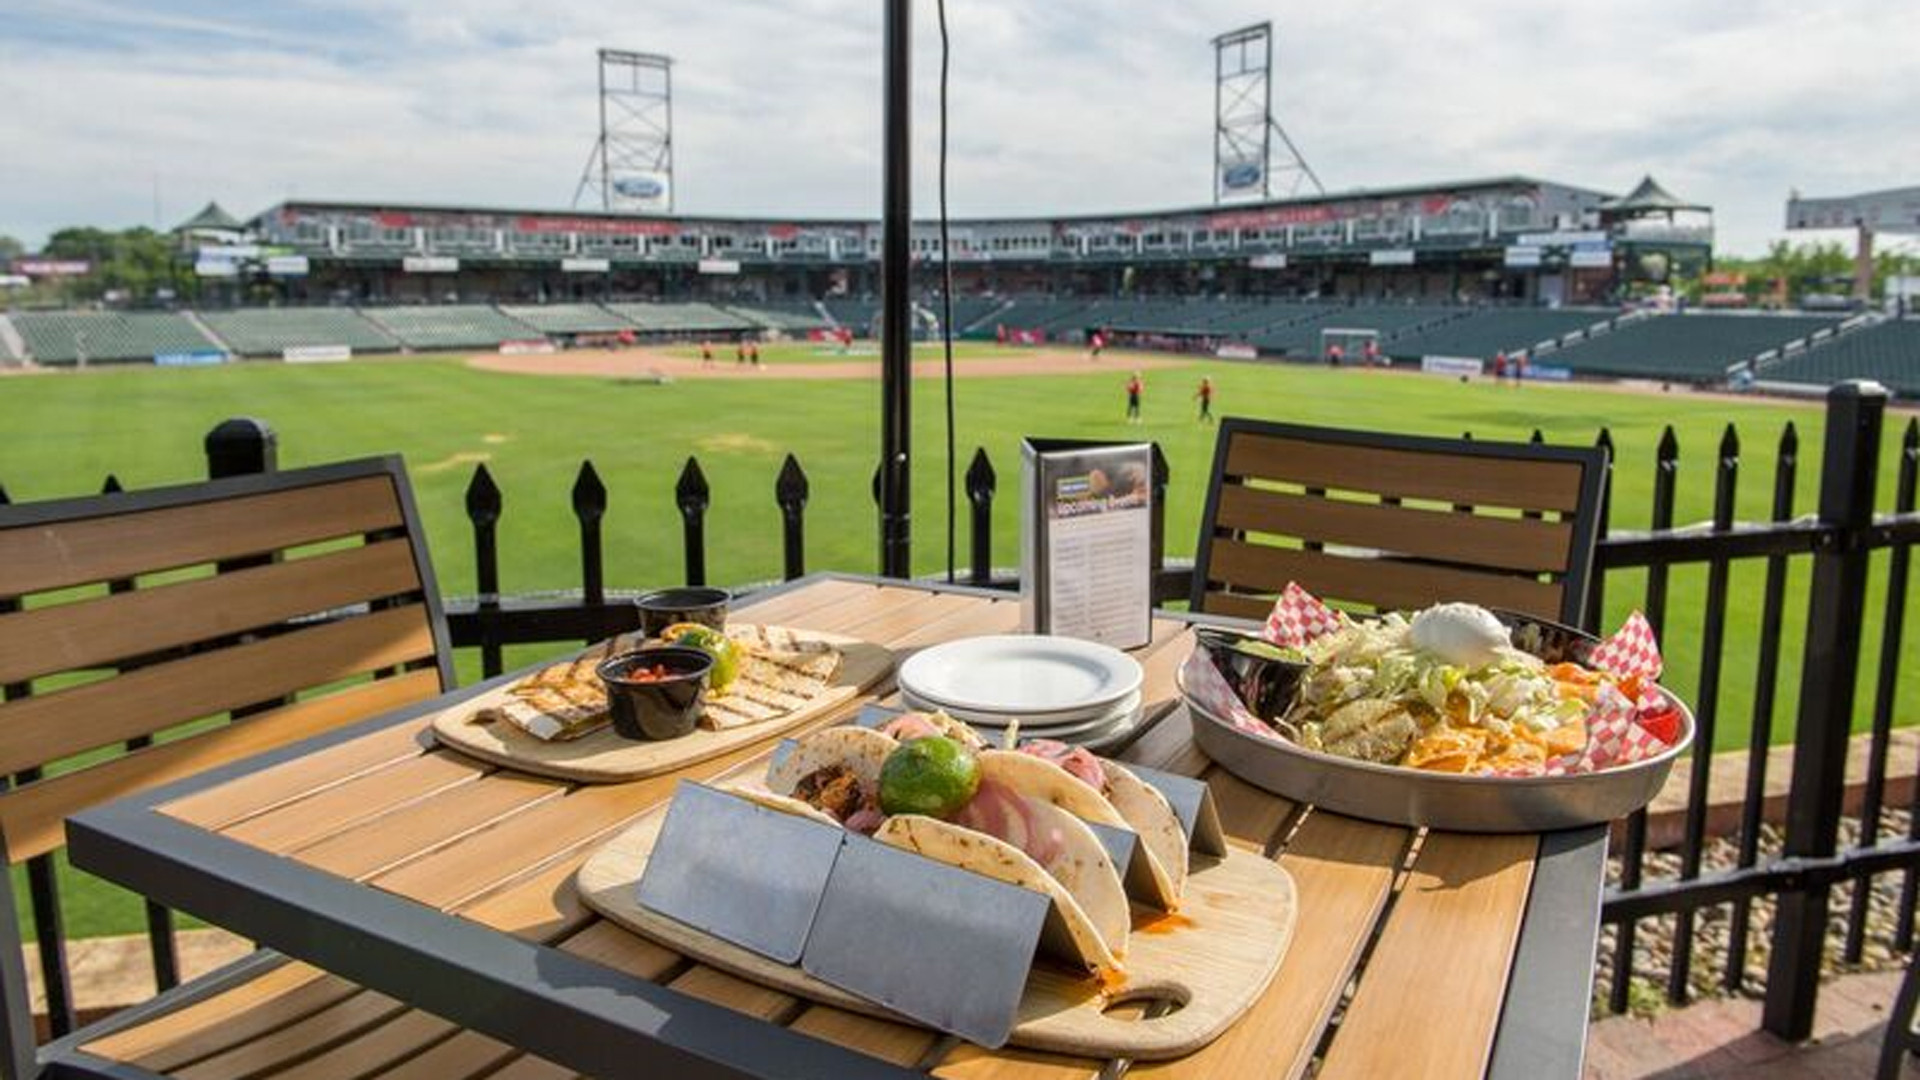 New Hampshire restaurants and activities | Sitting on the Patio at the Northeast Delta Dental Stadium